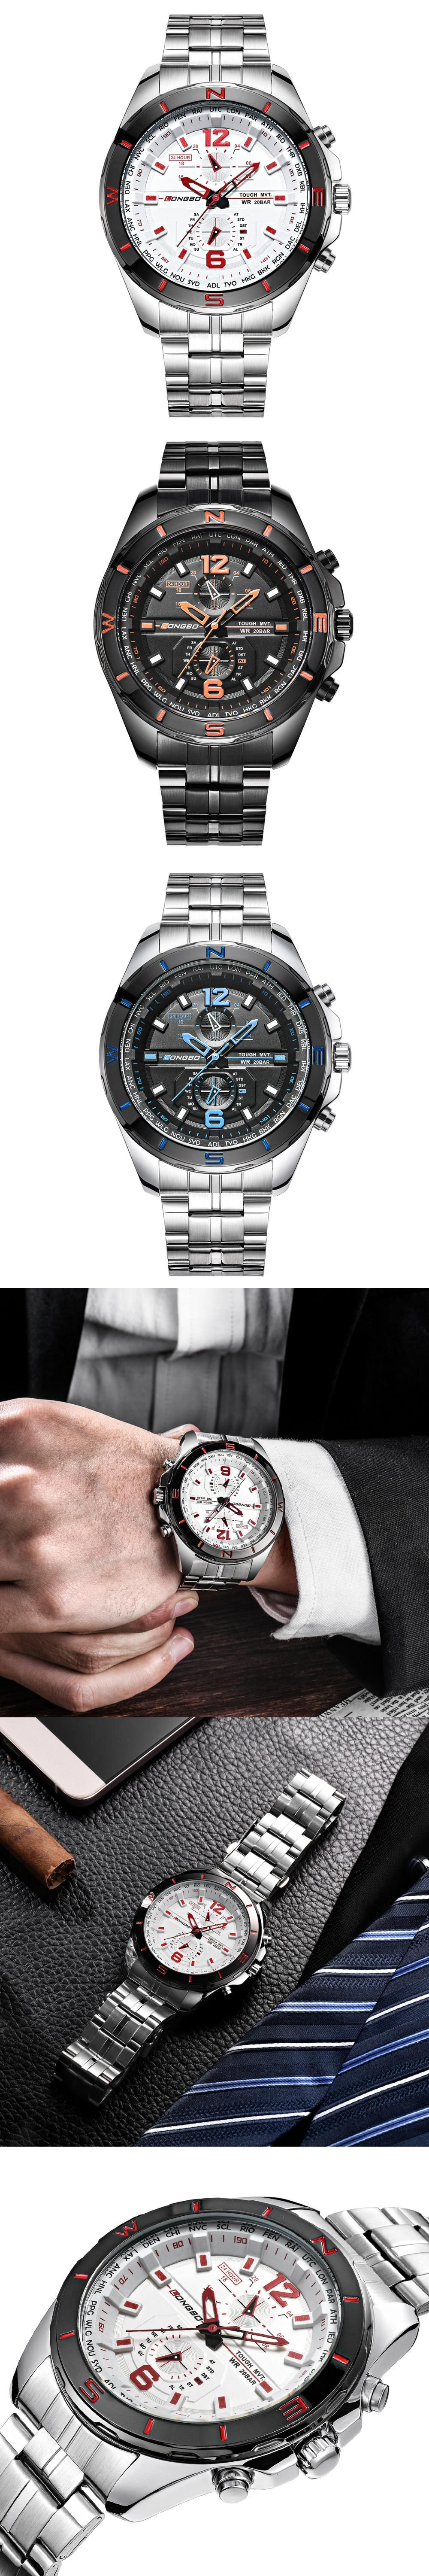 the casio g mens men best watches want waterproof daily under s shock